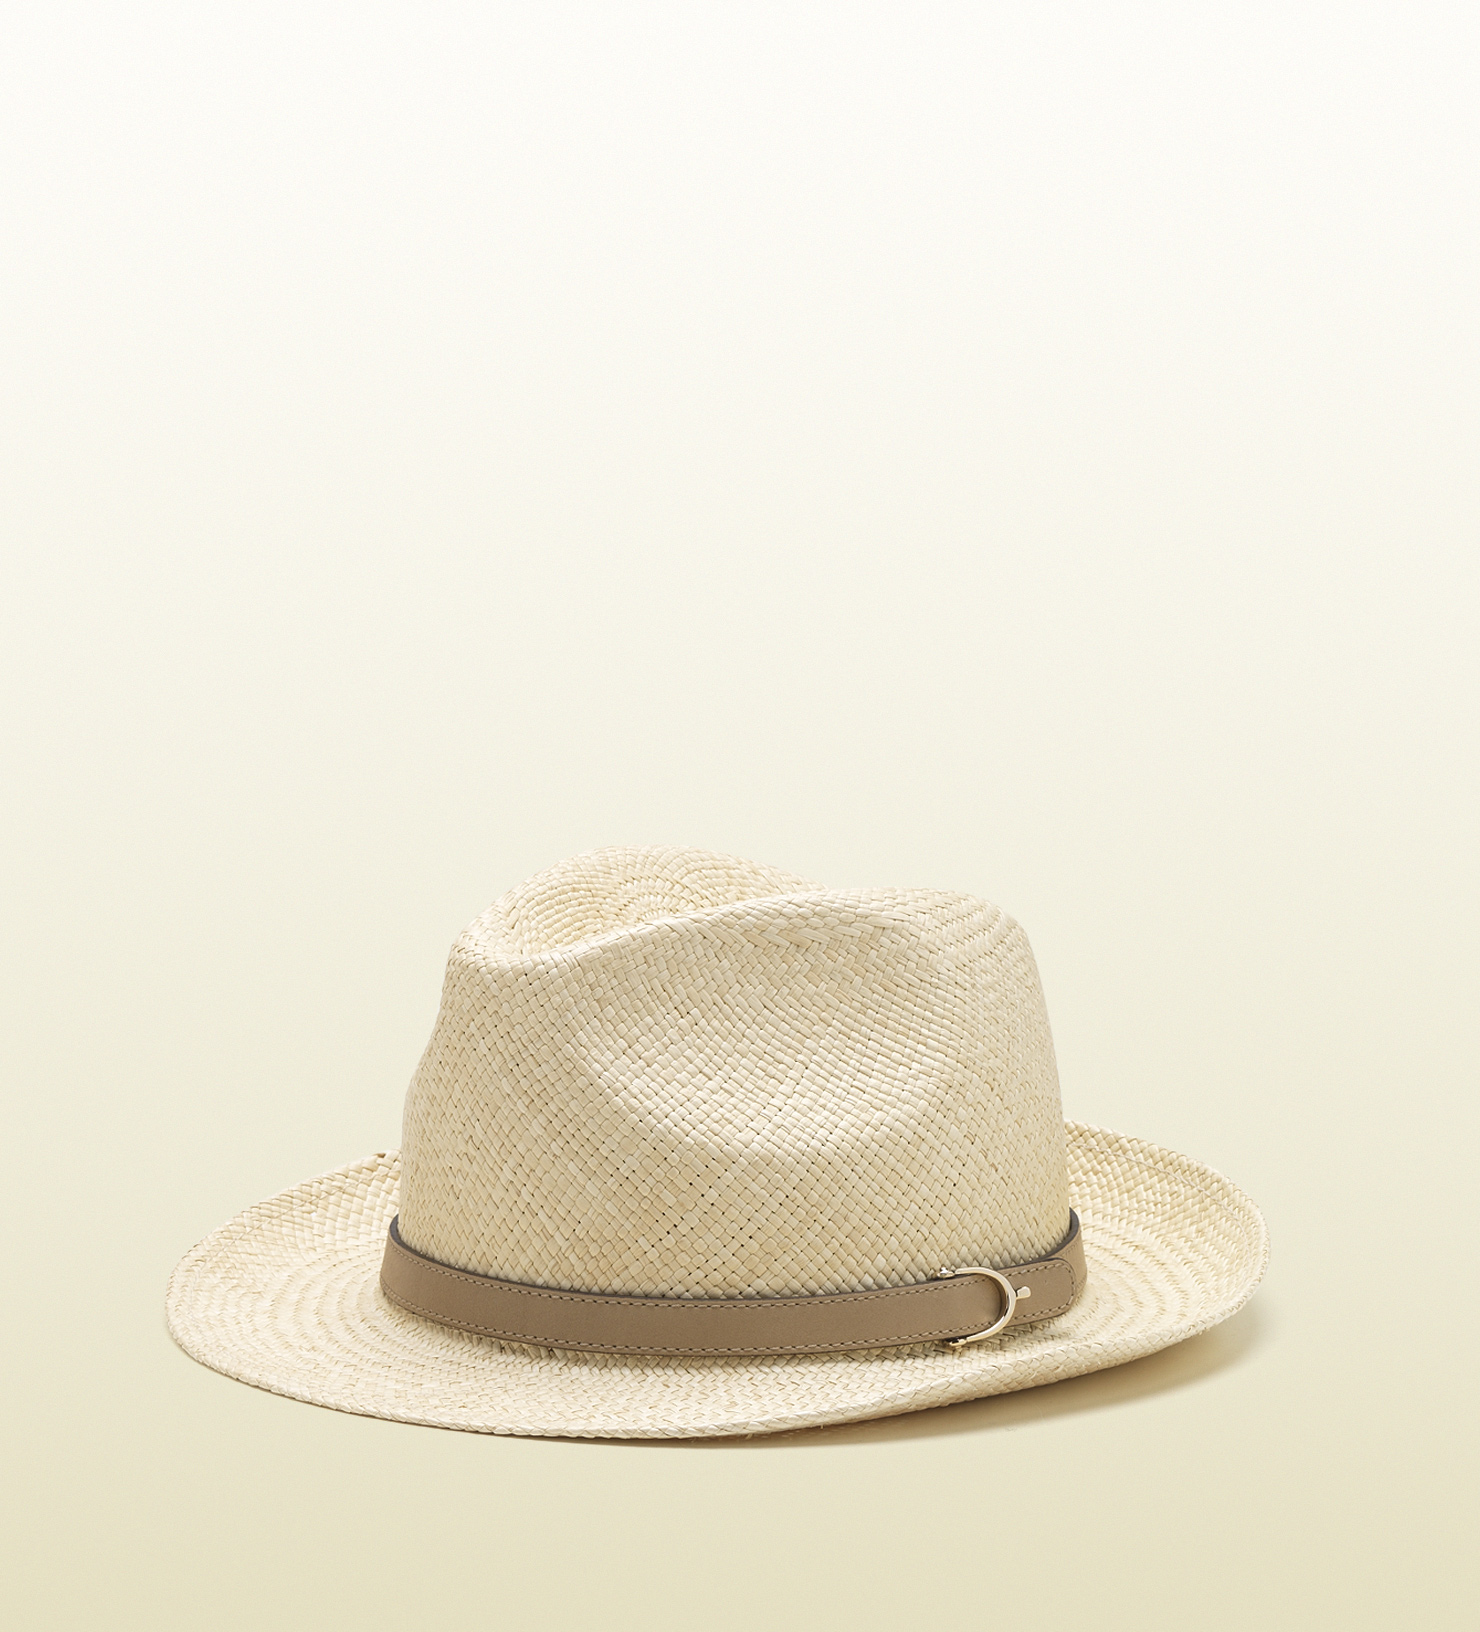 Gucci - natural straw hat with light pink leather detail 309129GIE1G9562